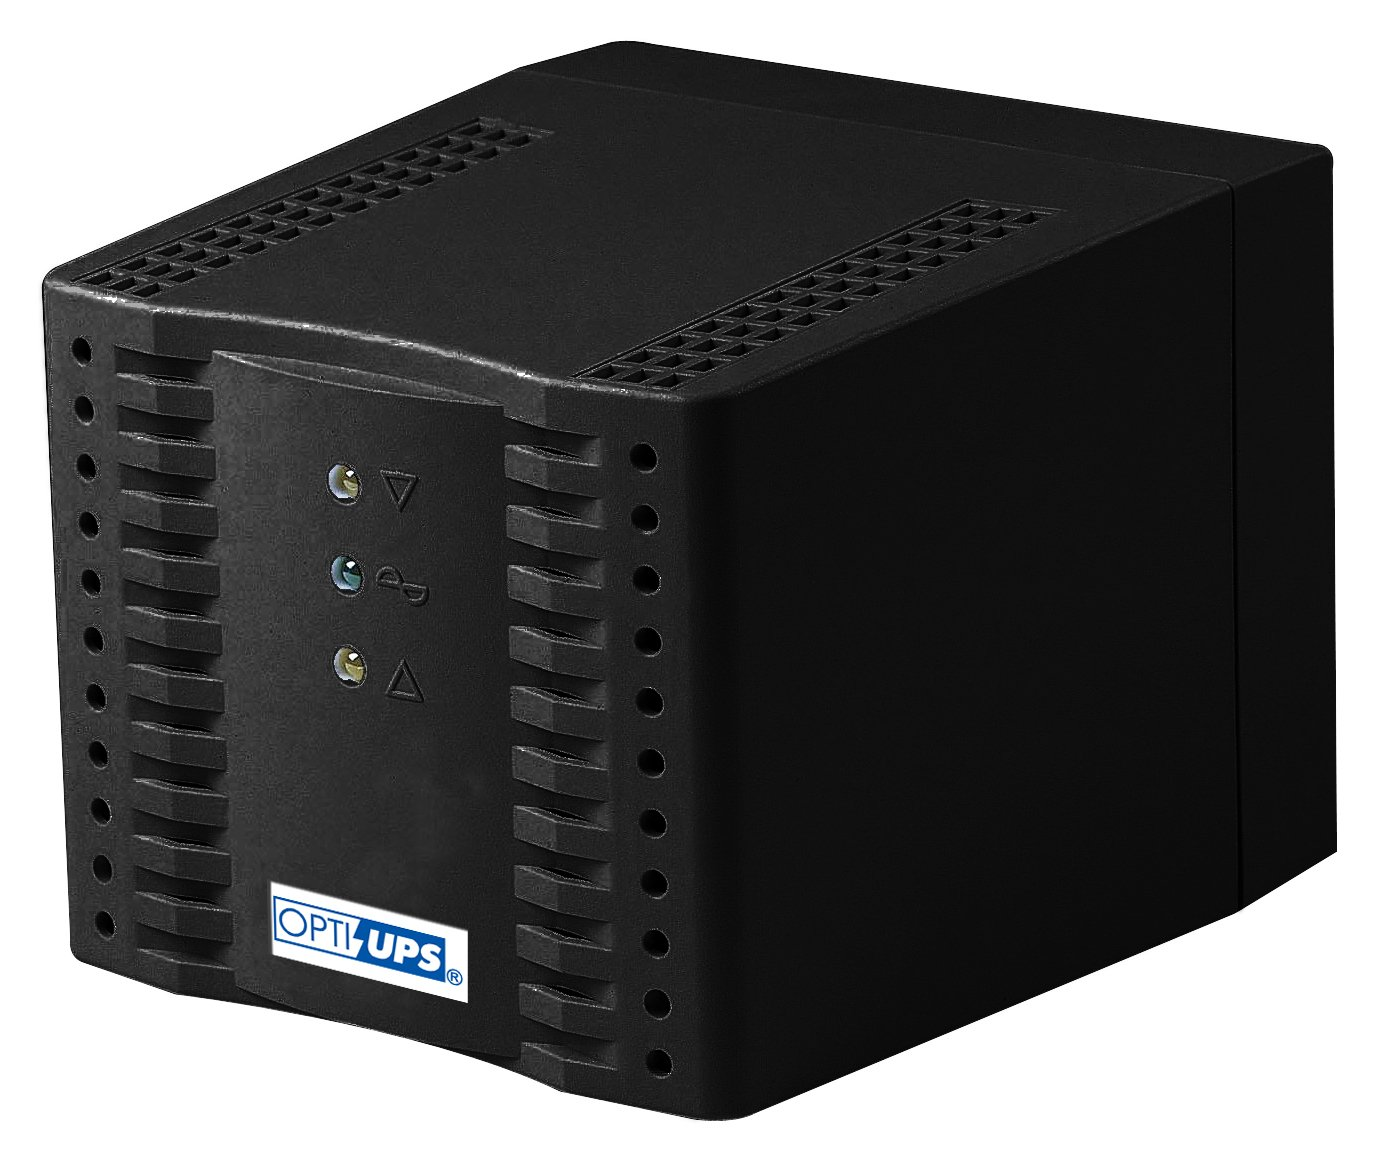 OPTI-UPS AVR SS2000 Home AVR Series 6-Outlet Automatic Voltage Regulator – Black (2000 VA / 1000 W)